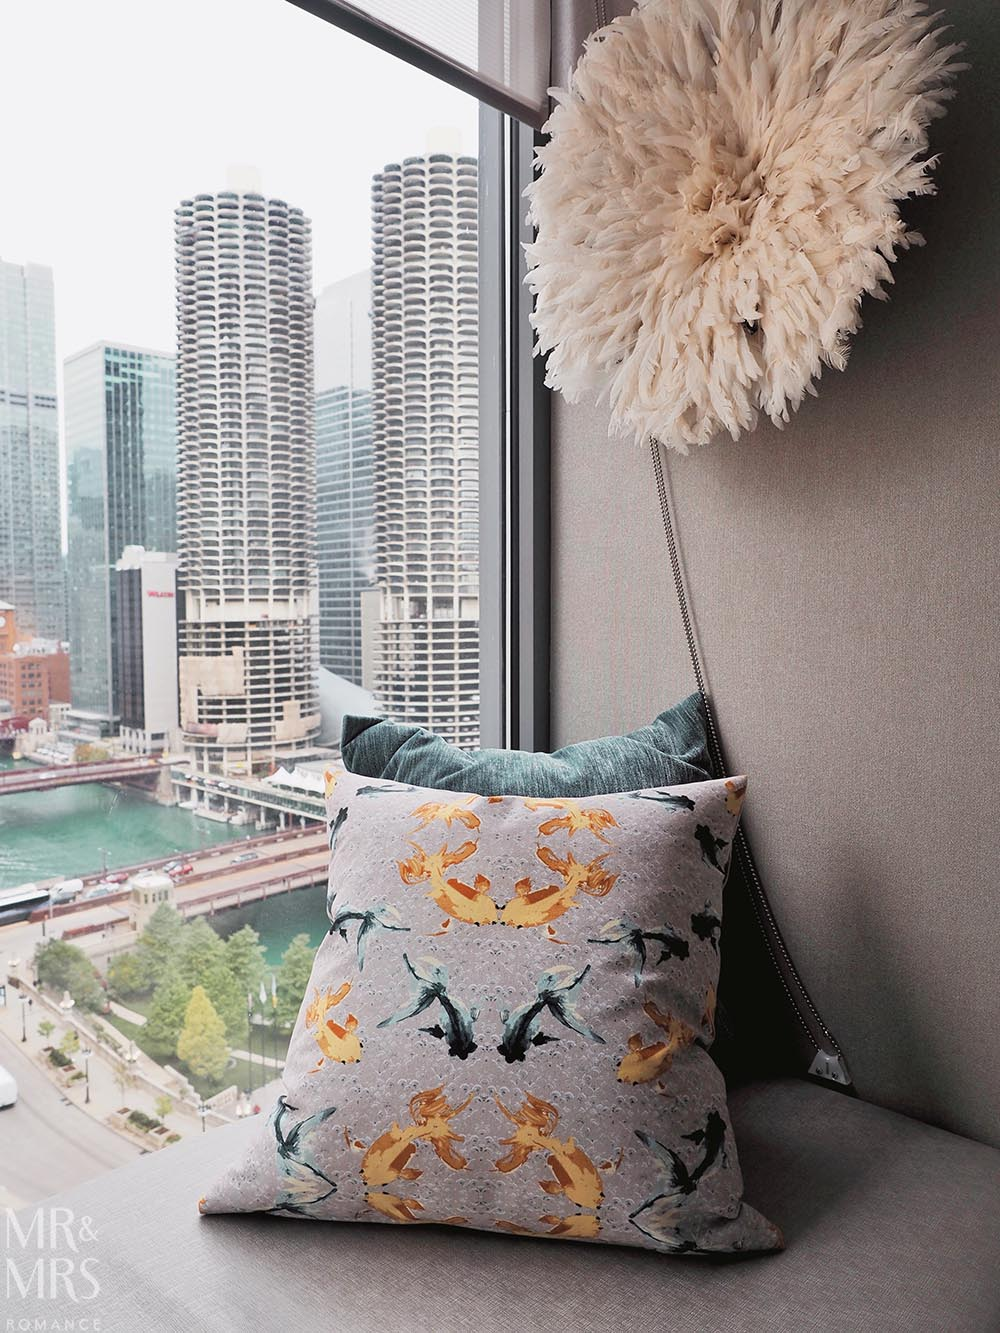 Where to stay in Chicago - Kimpton Hotel Monaco Chicago - suite view